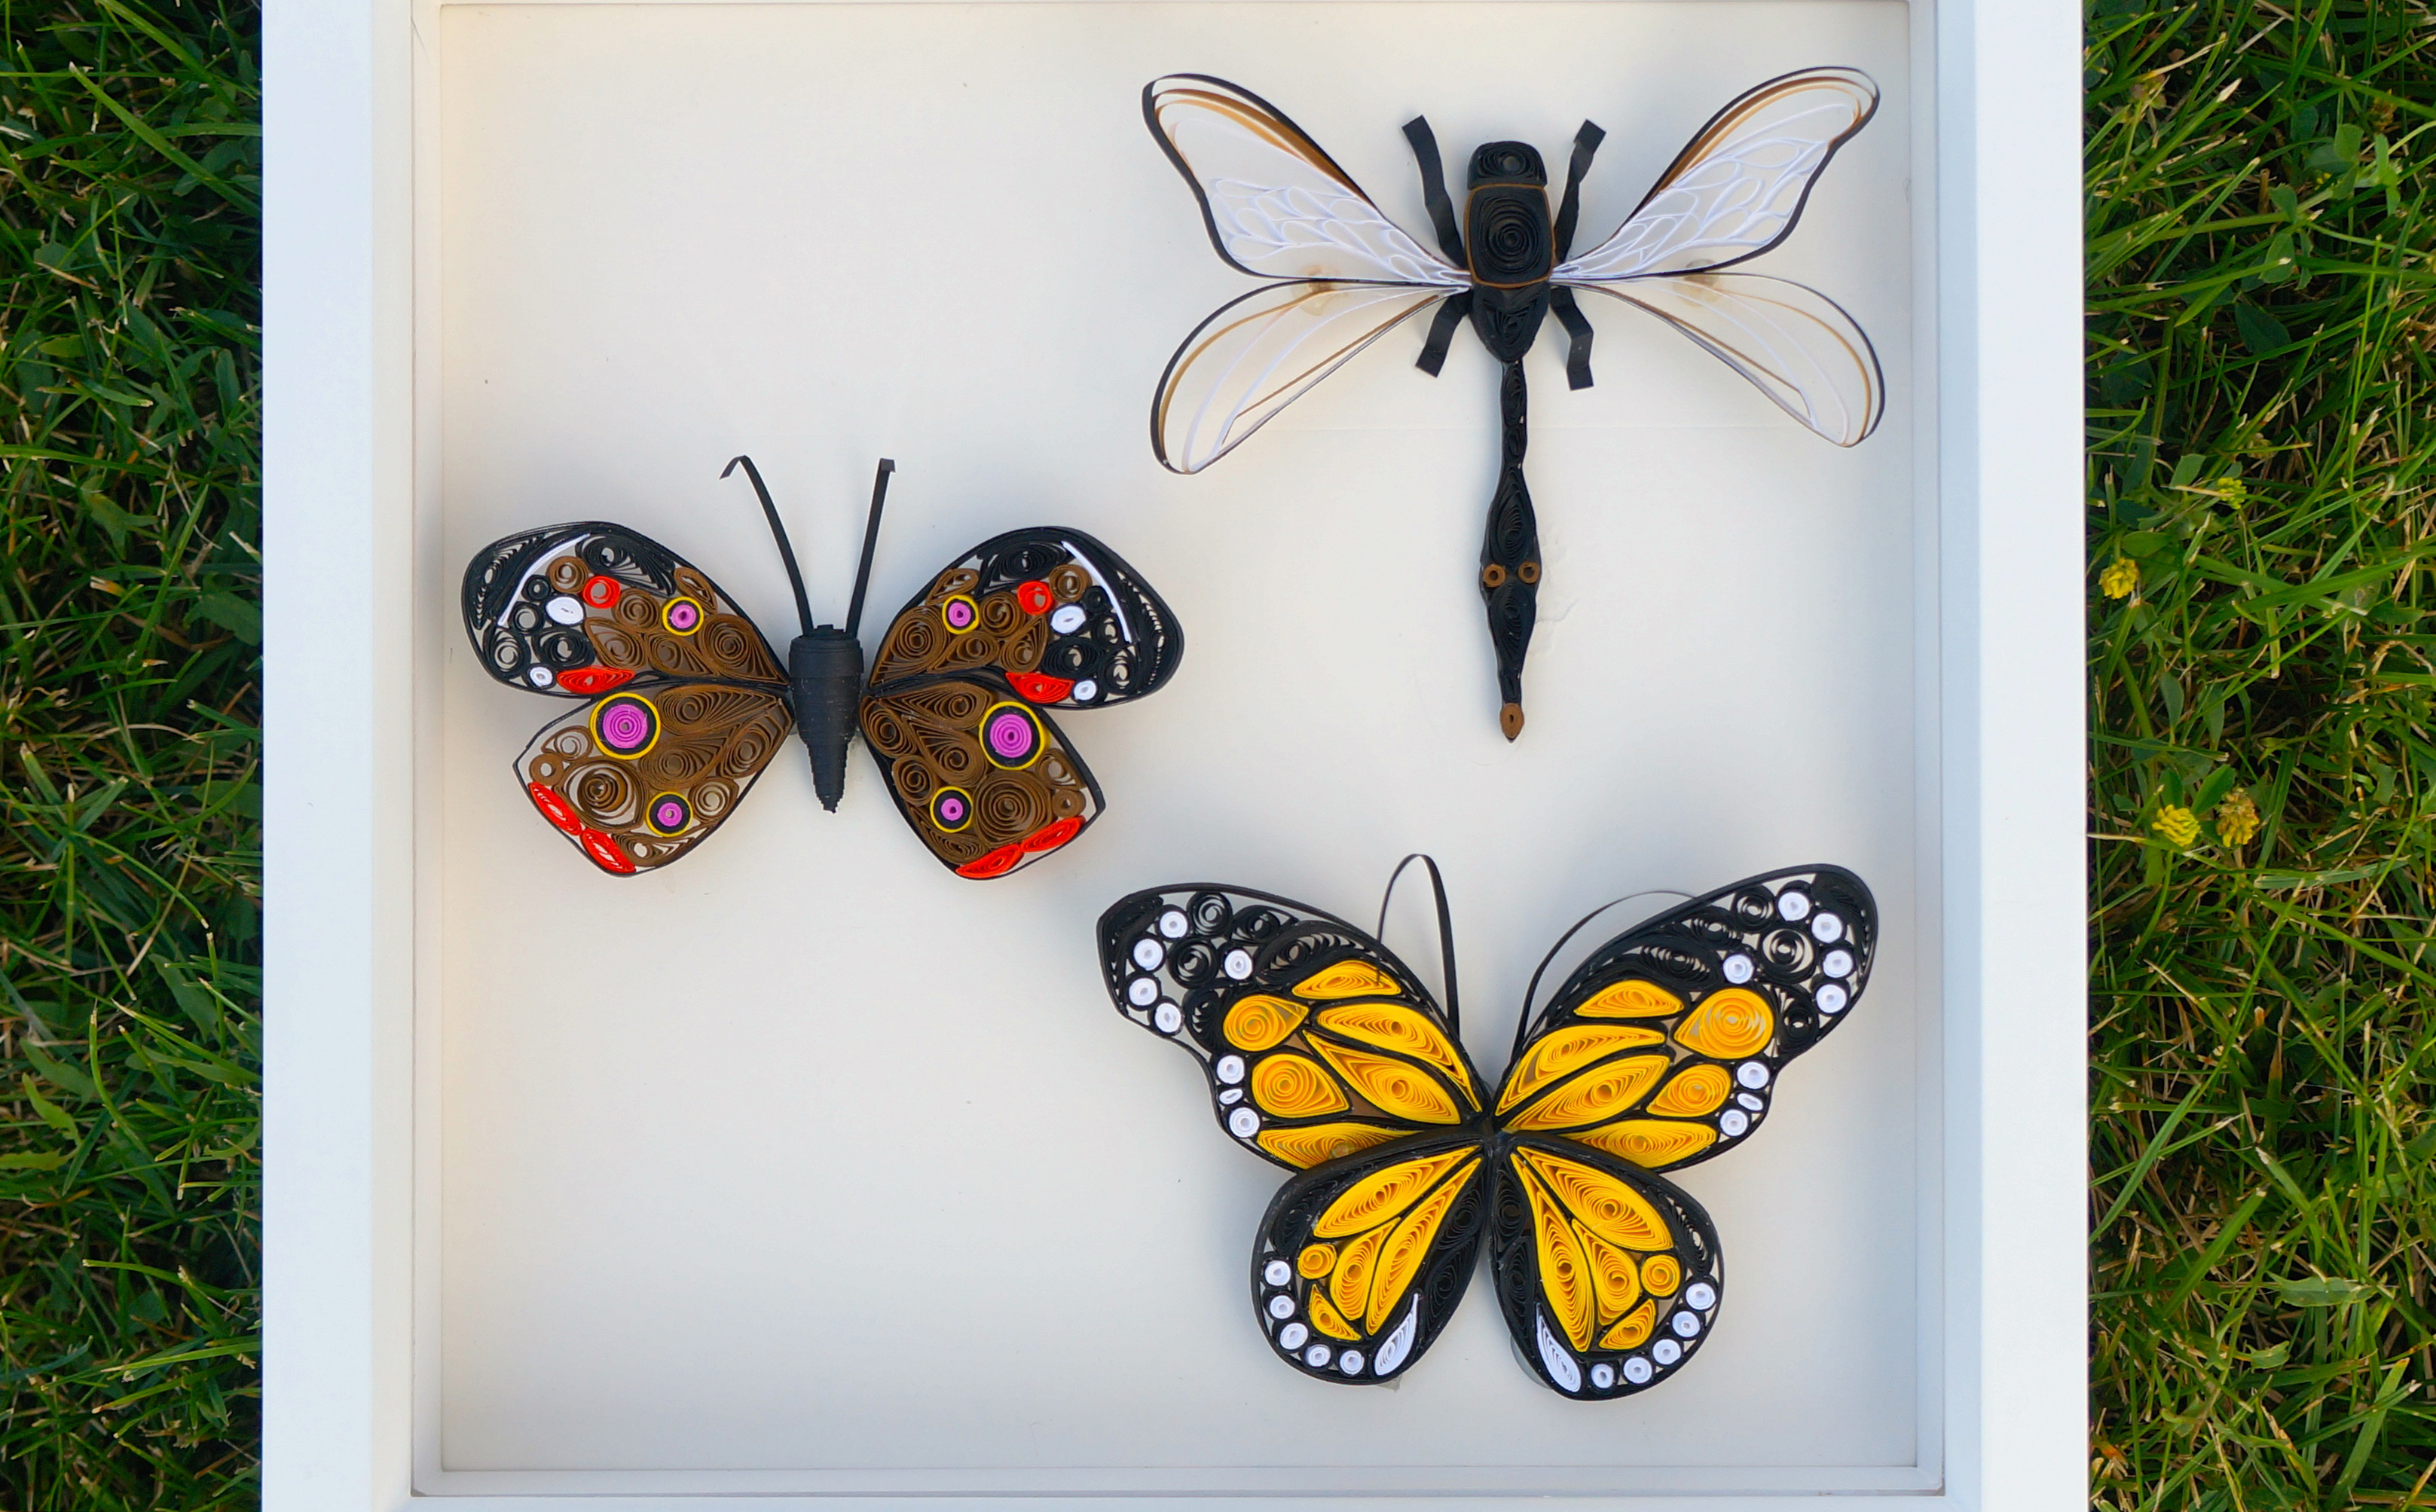 Paper Quilled Insects: Capture the Beauty, Not the Bugs